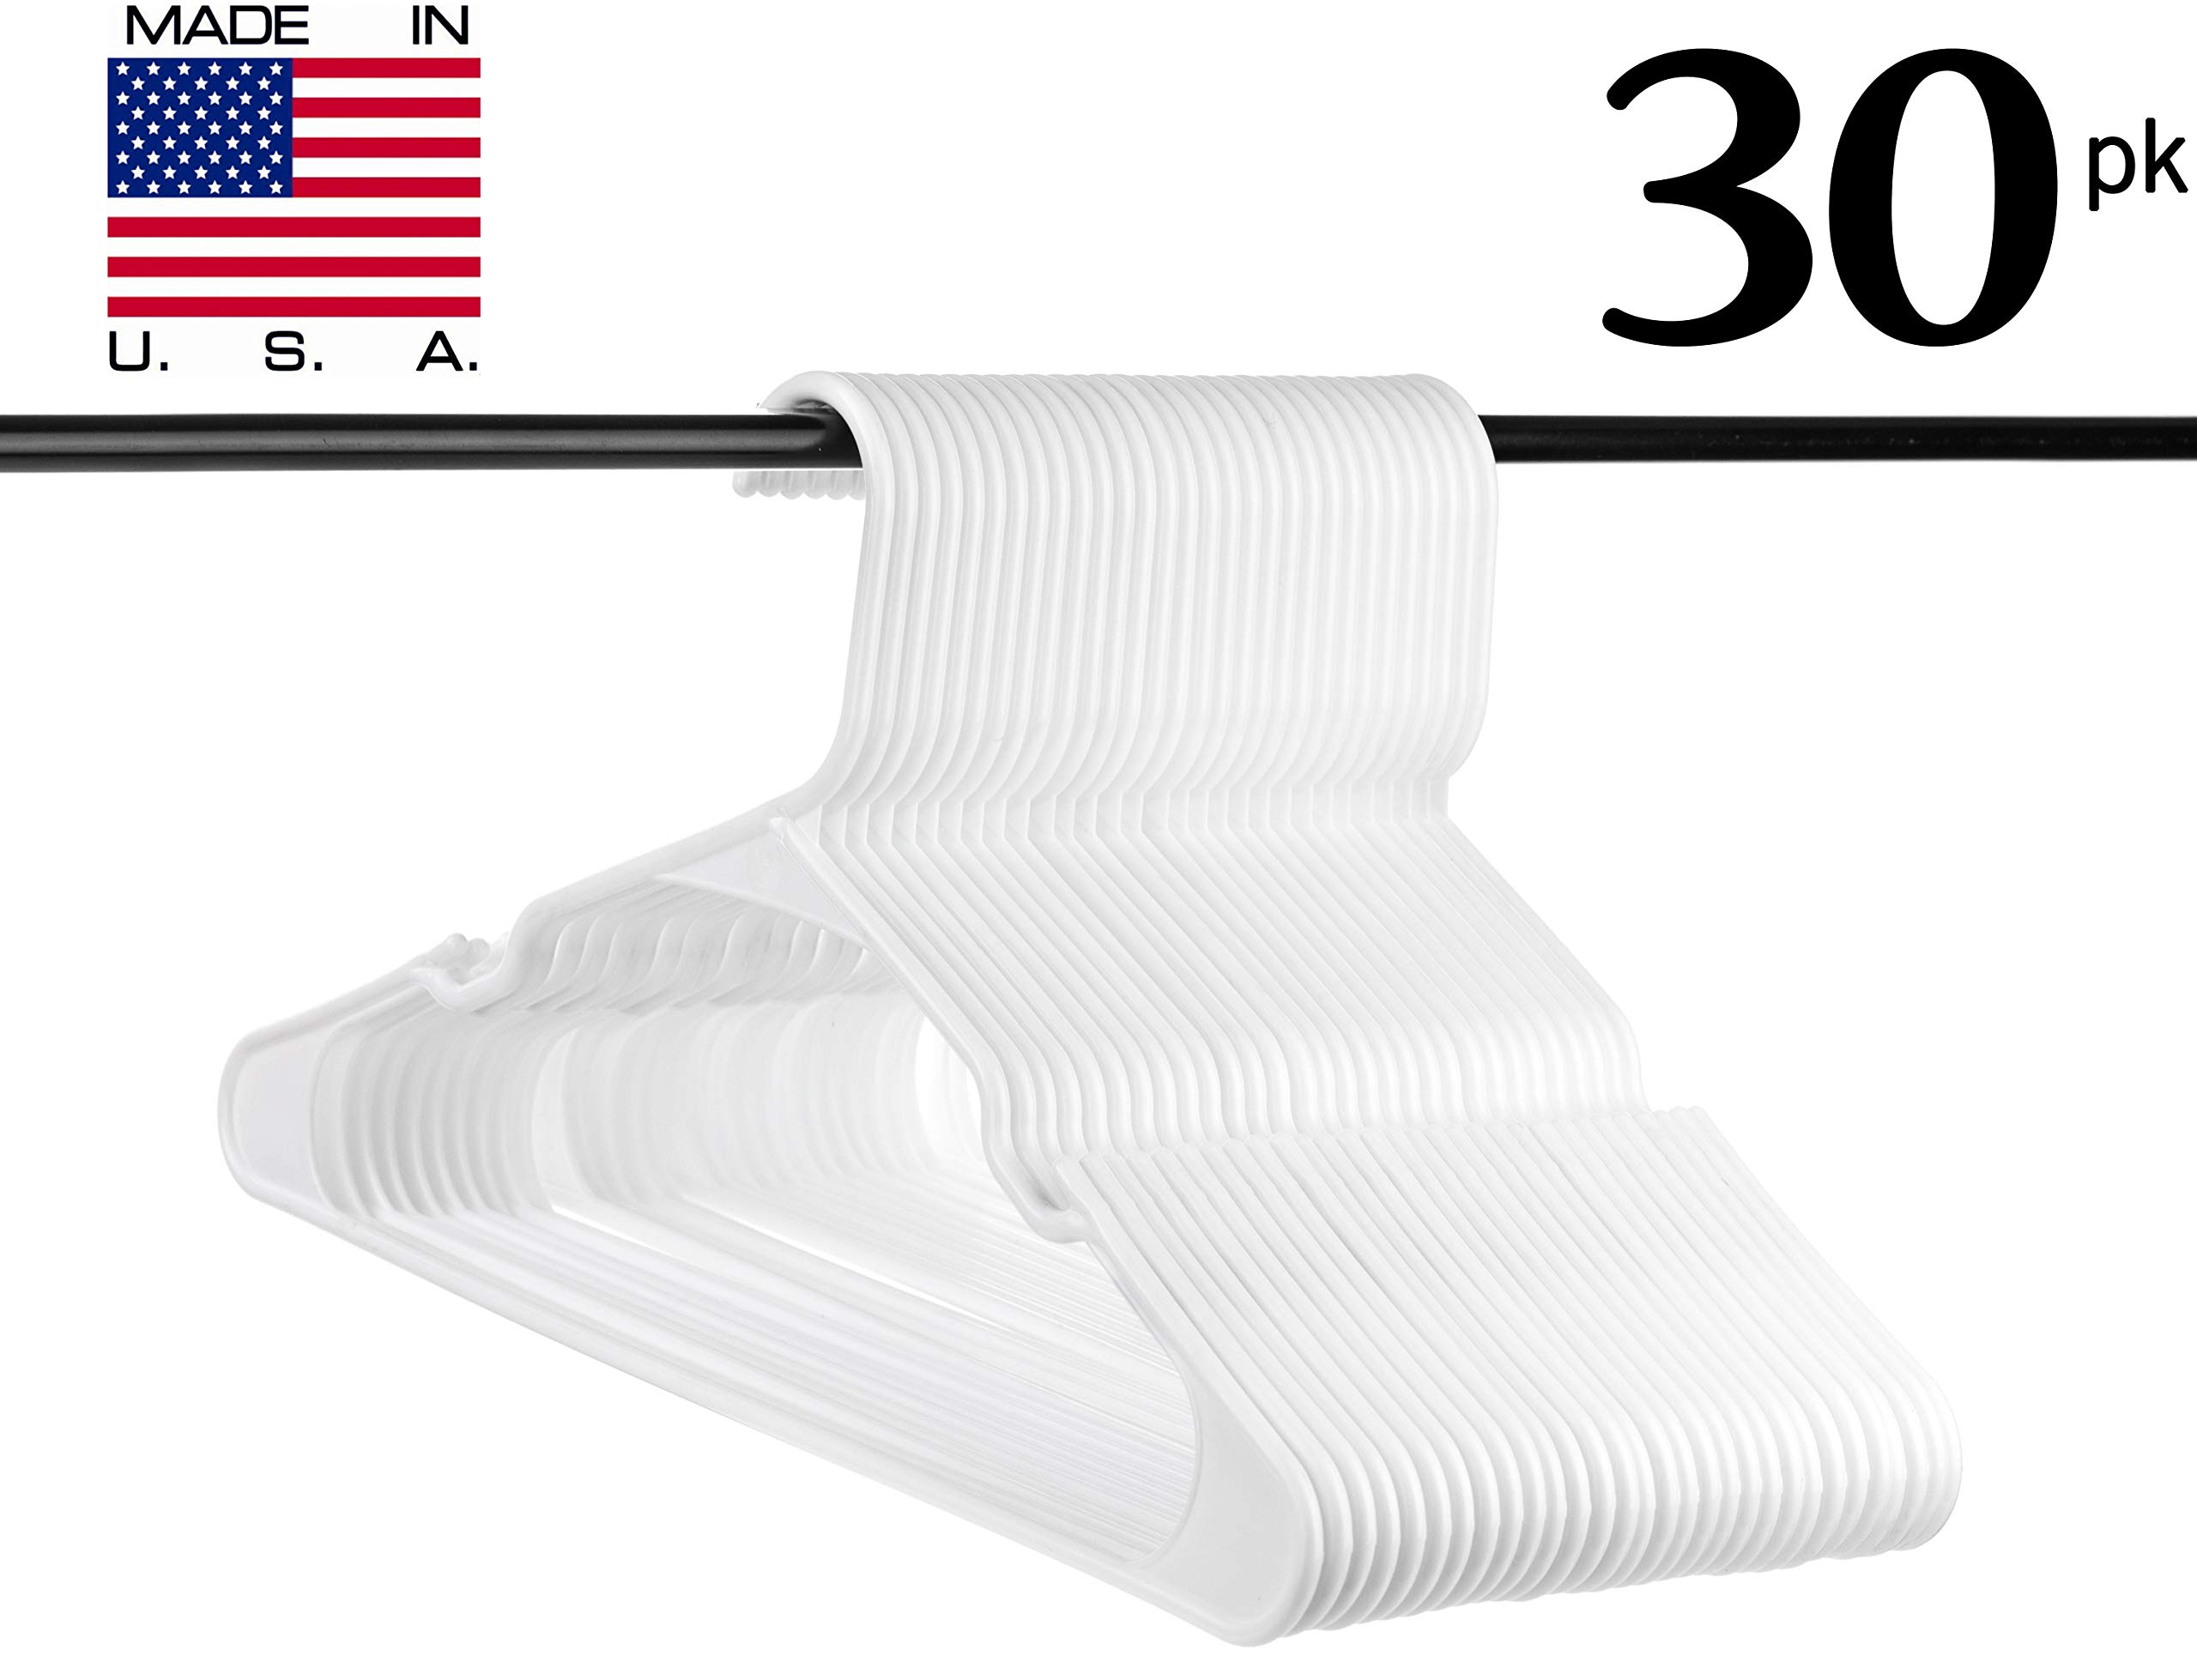 Neaties USA Made White Plastic Hangers with Notches, 30pk by Neaties